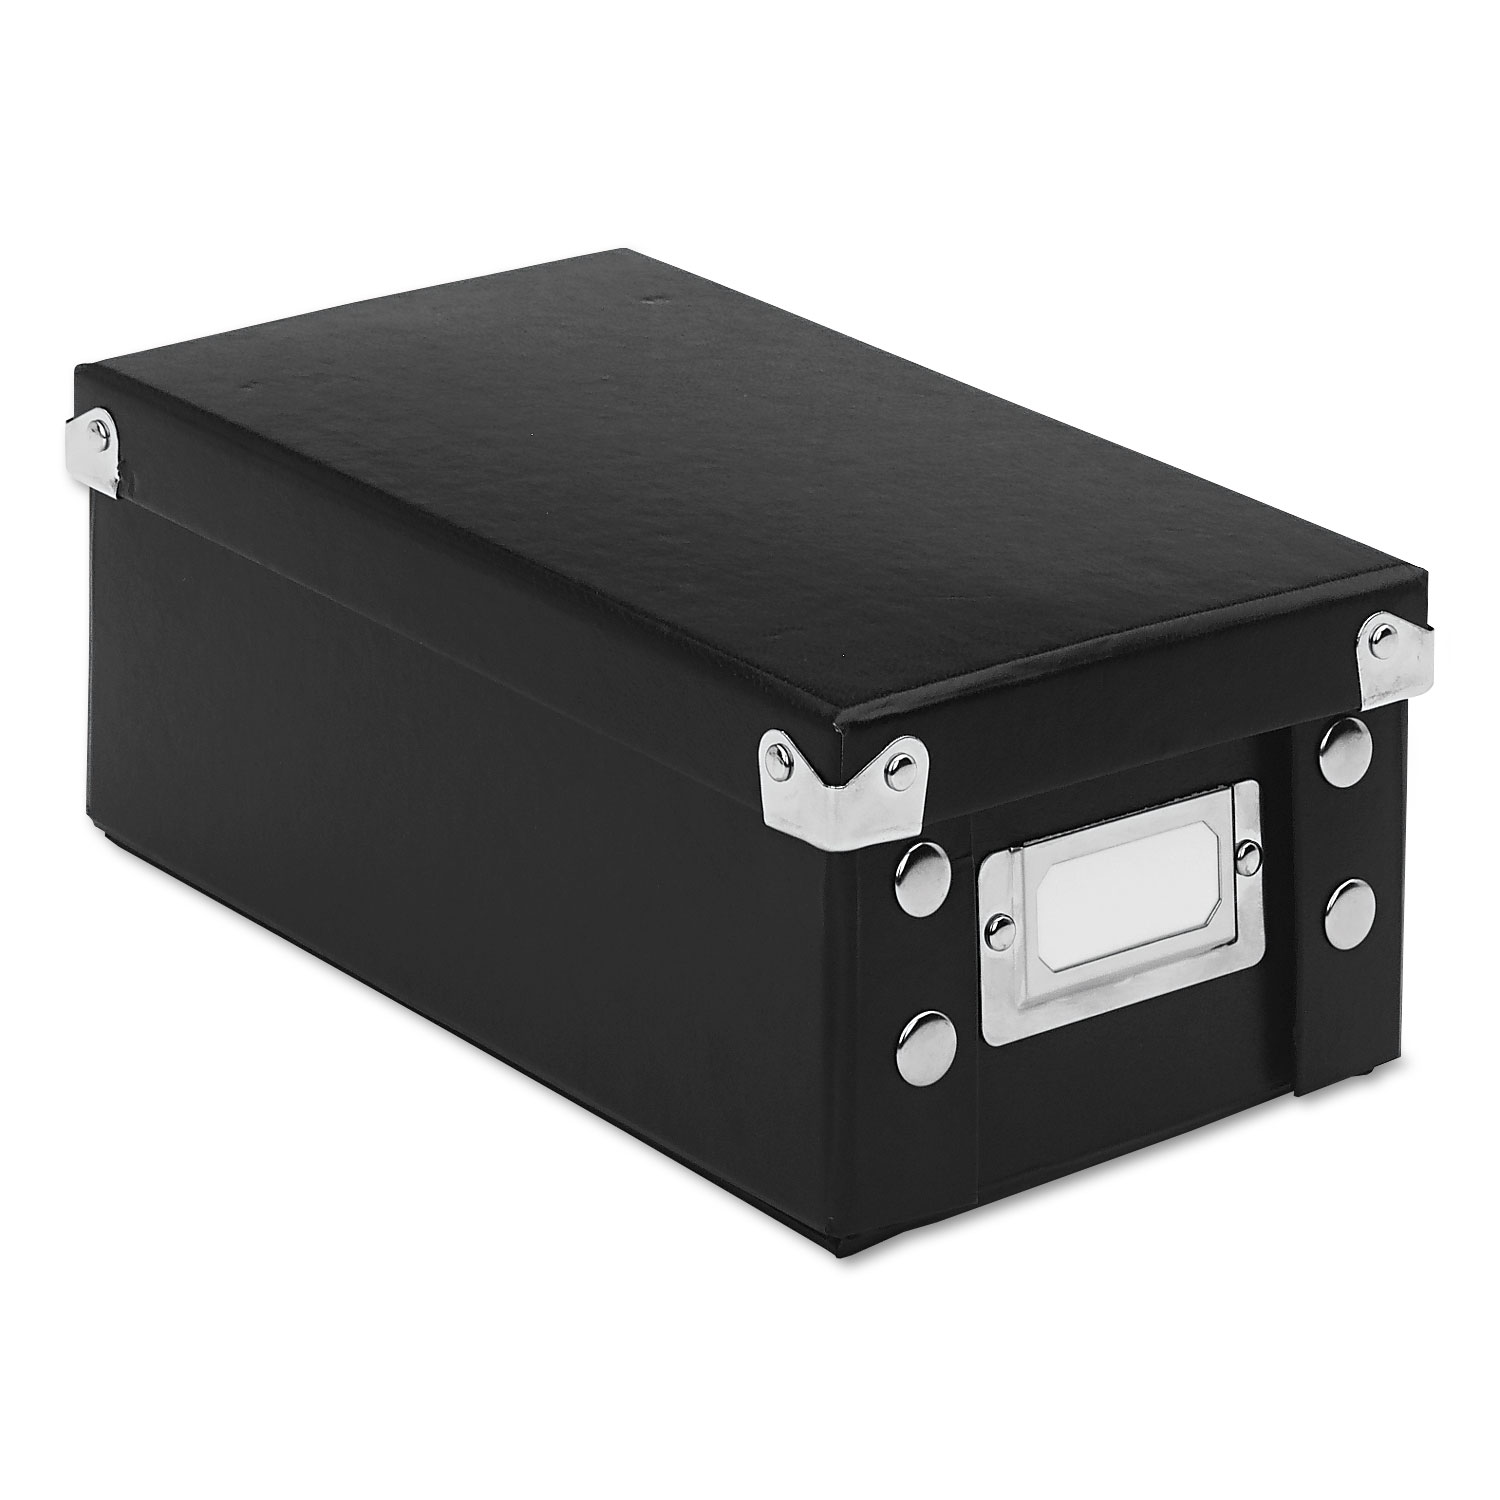 Purchase collapsible index card file box and other business card card file box thumbnail thumbnail 1 colourmoves